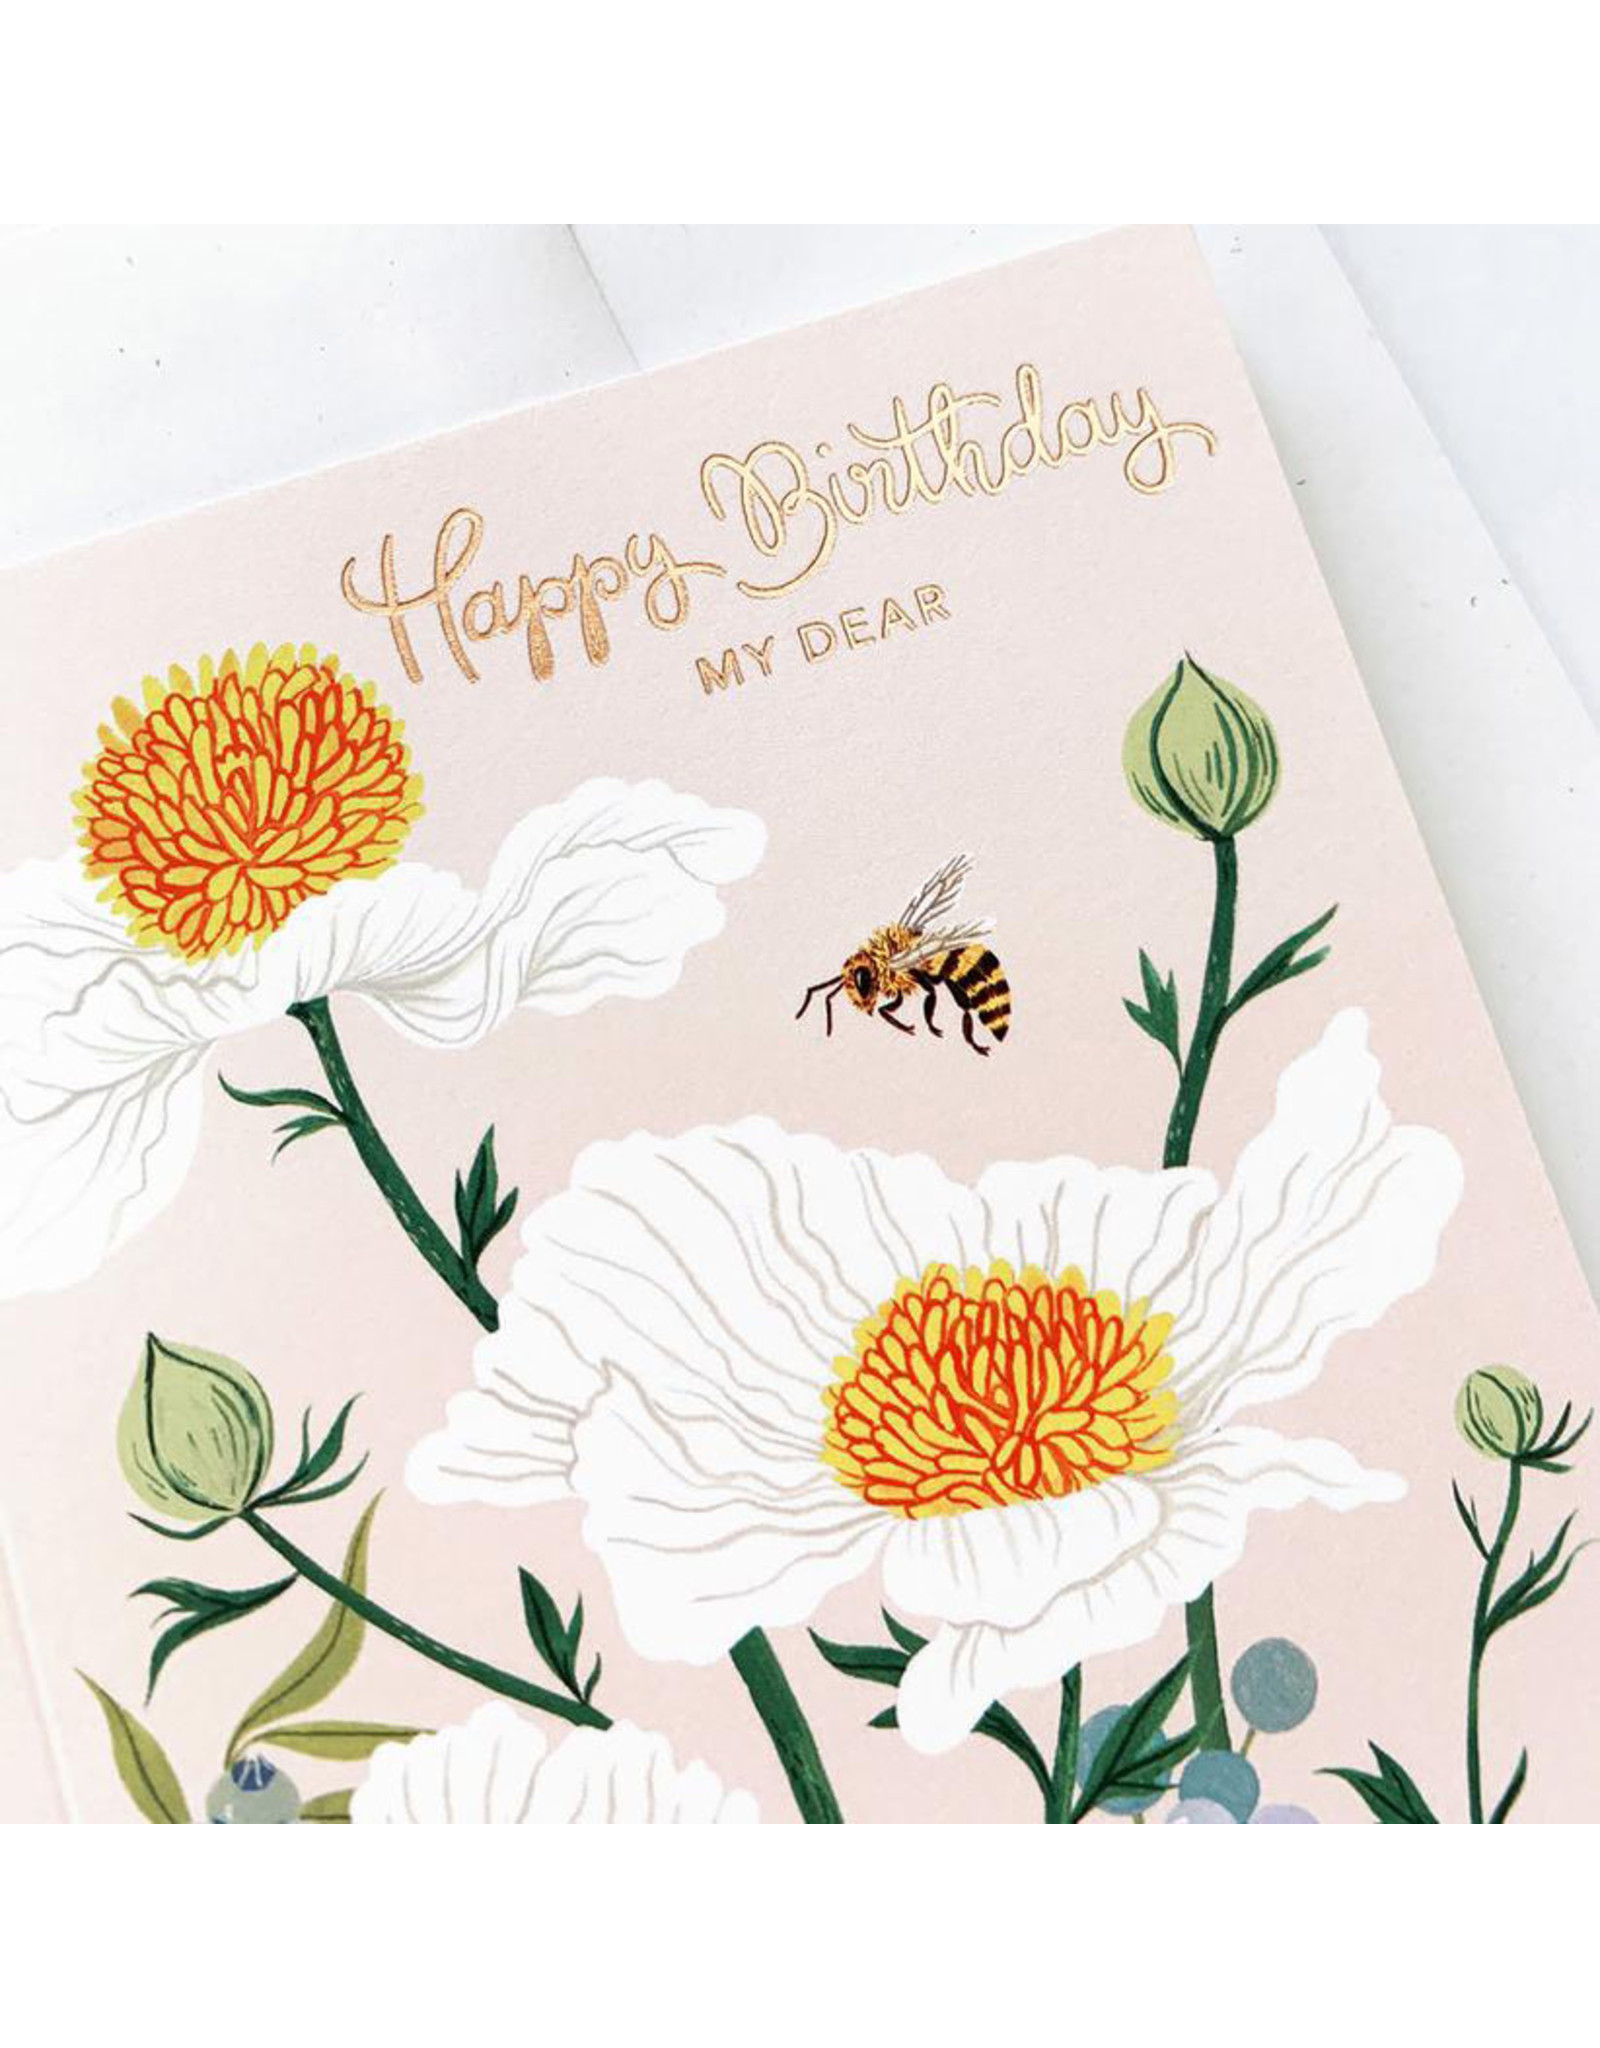 Oana Befort Matilija Poppies Birthday Card